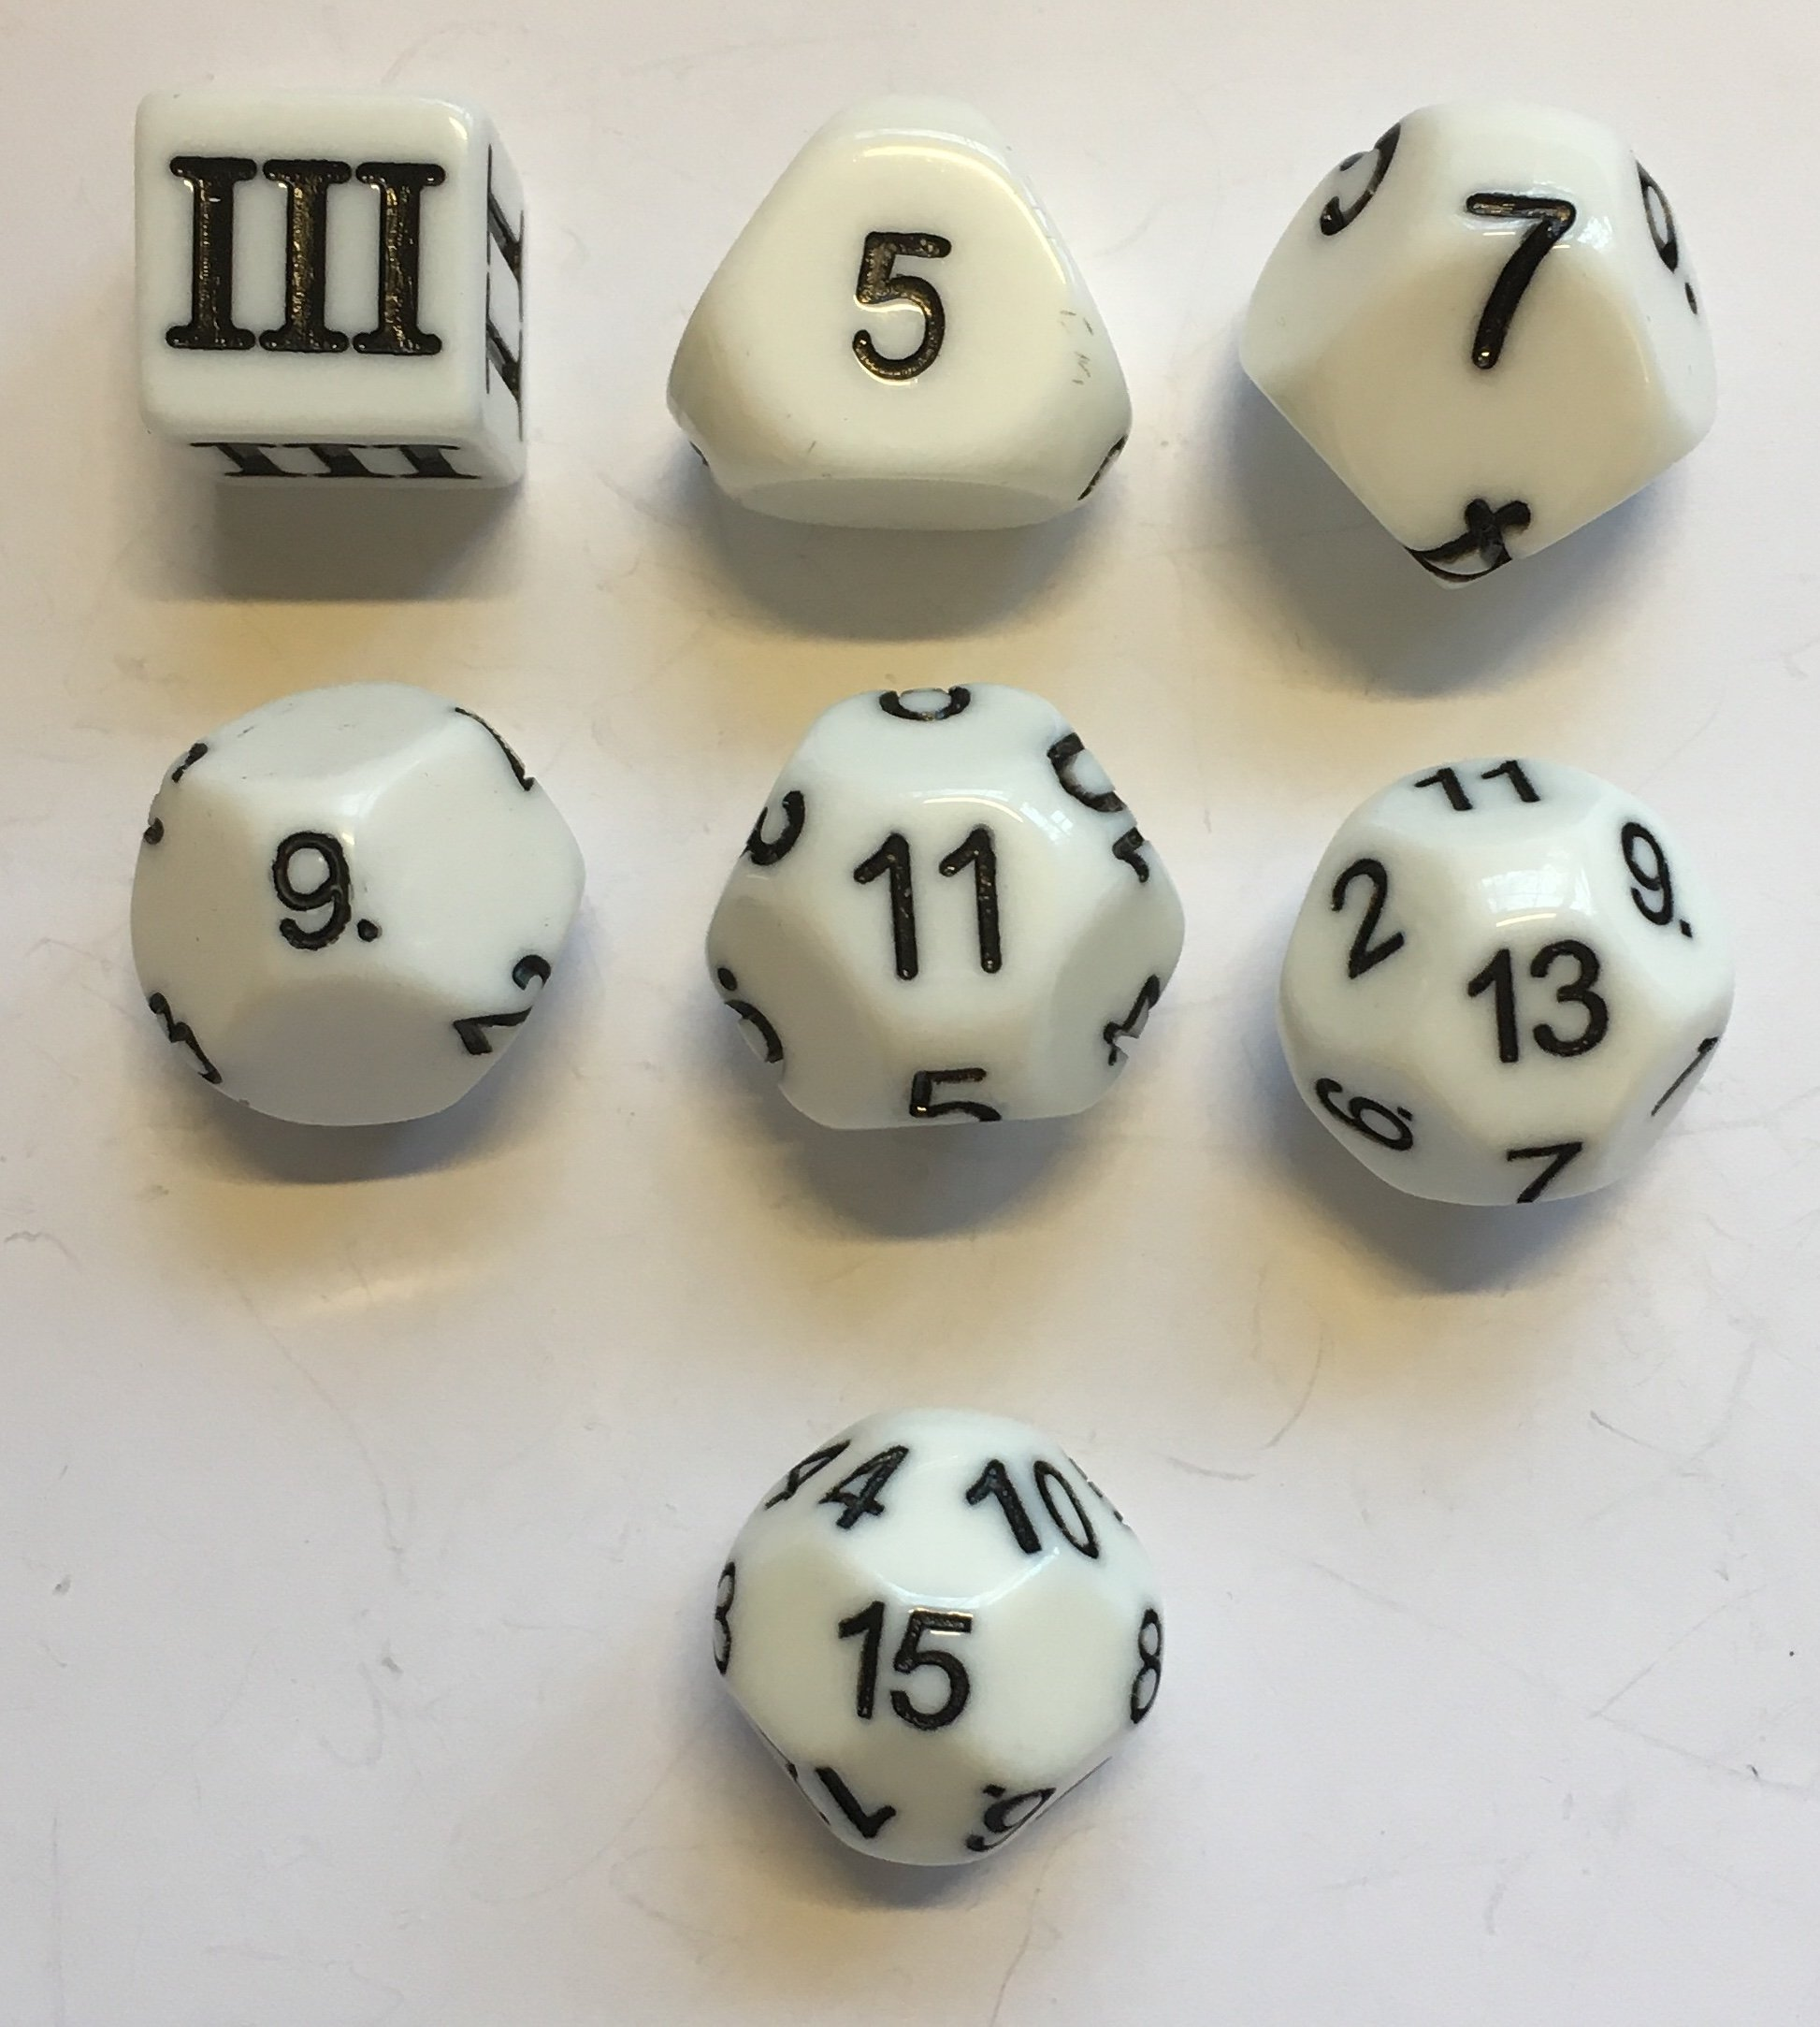 White - 7 Unusual Odd Numbered Dice Set - D3, D5, D7, D9, D11, D13 & D15